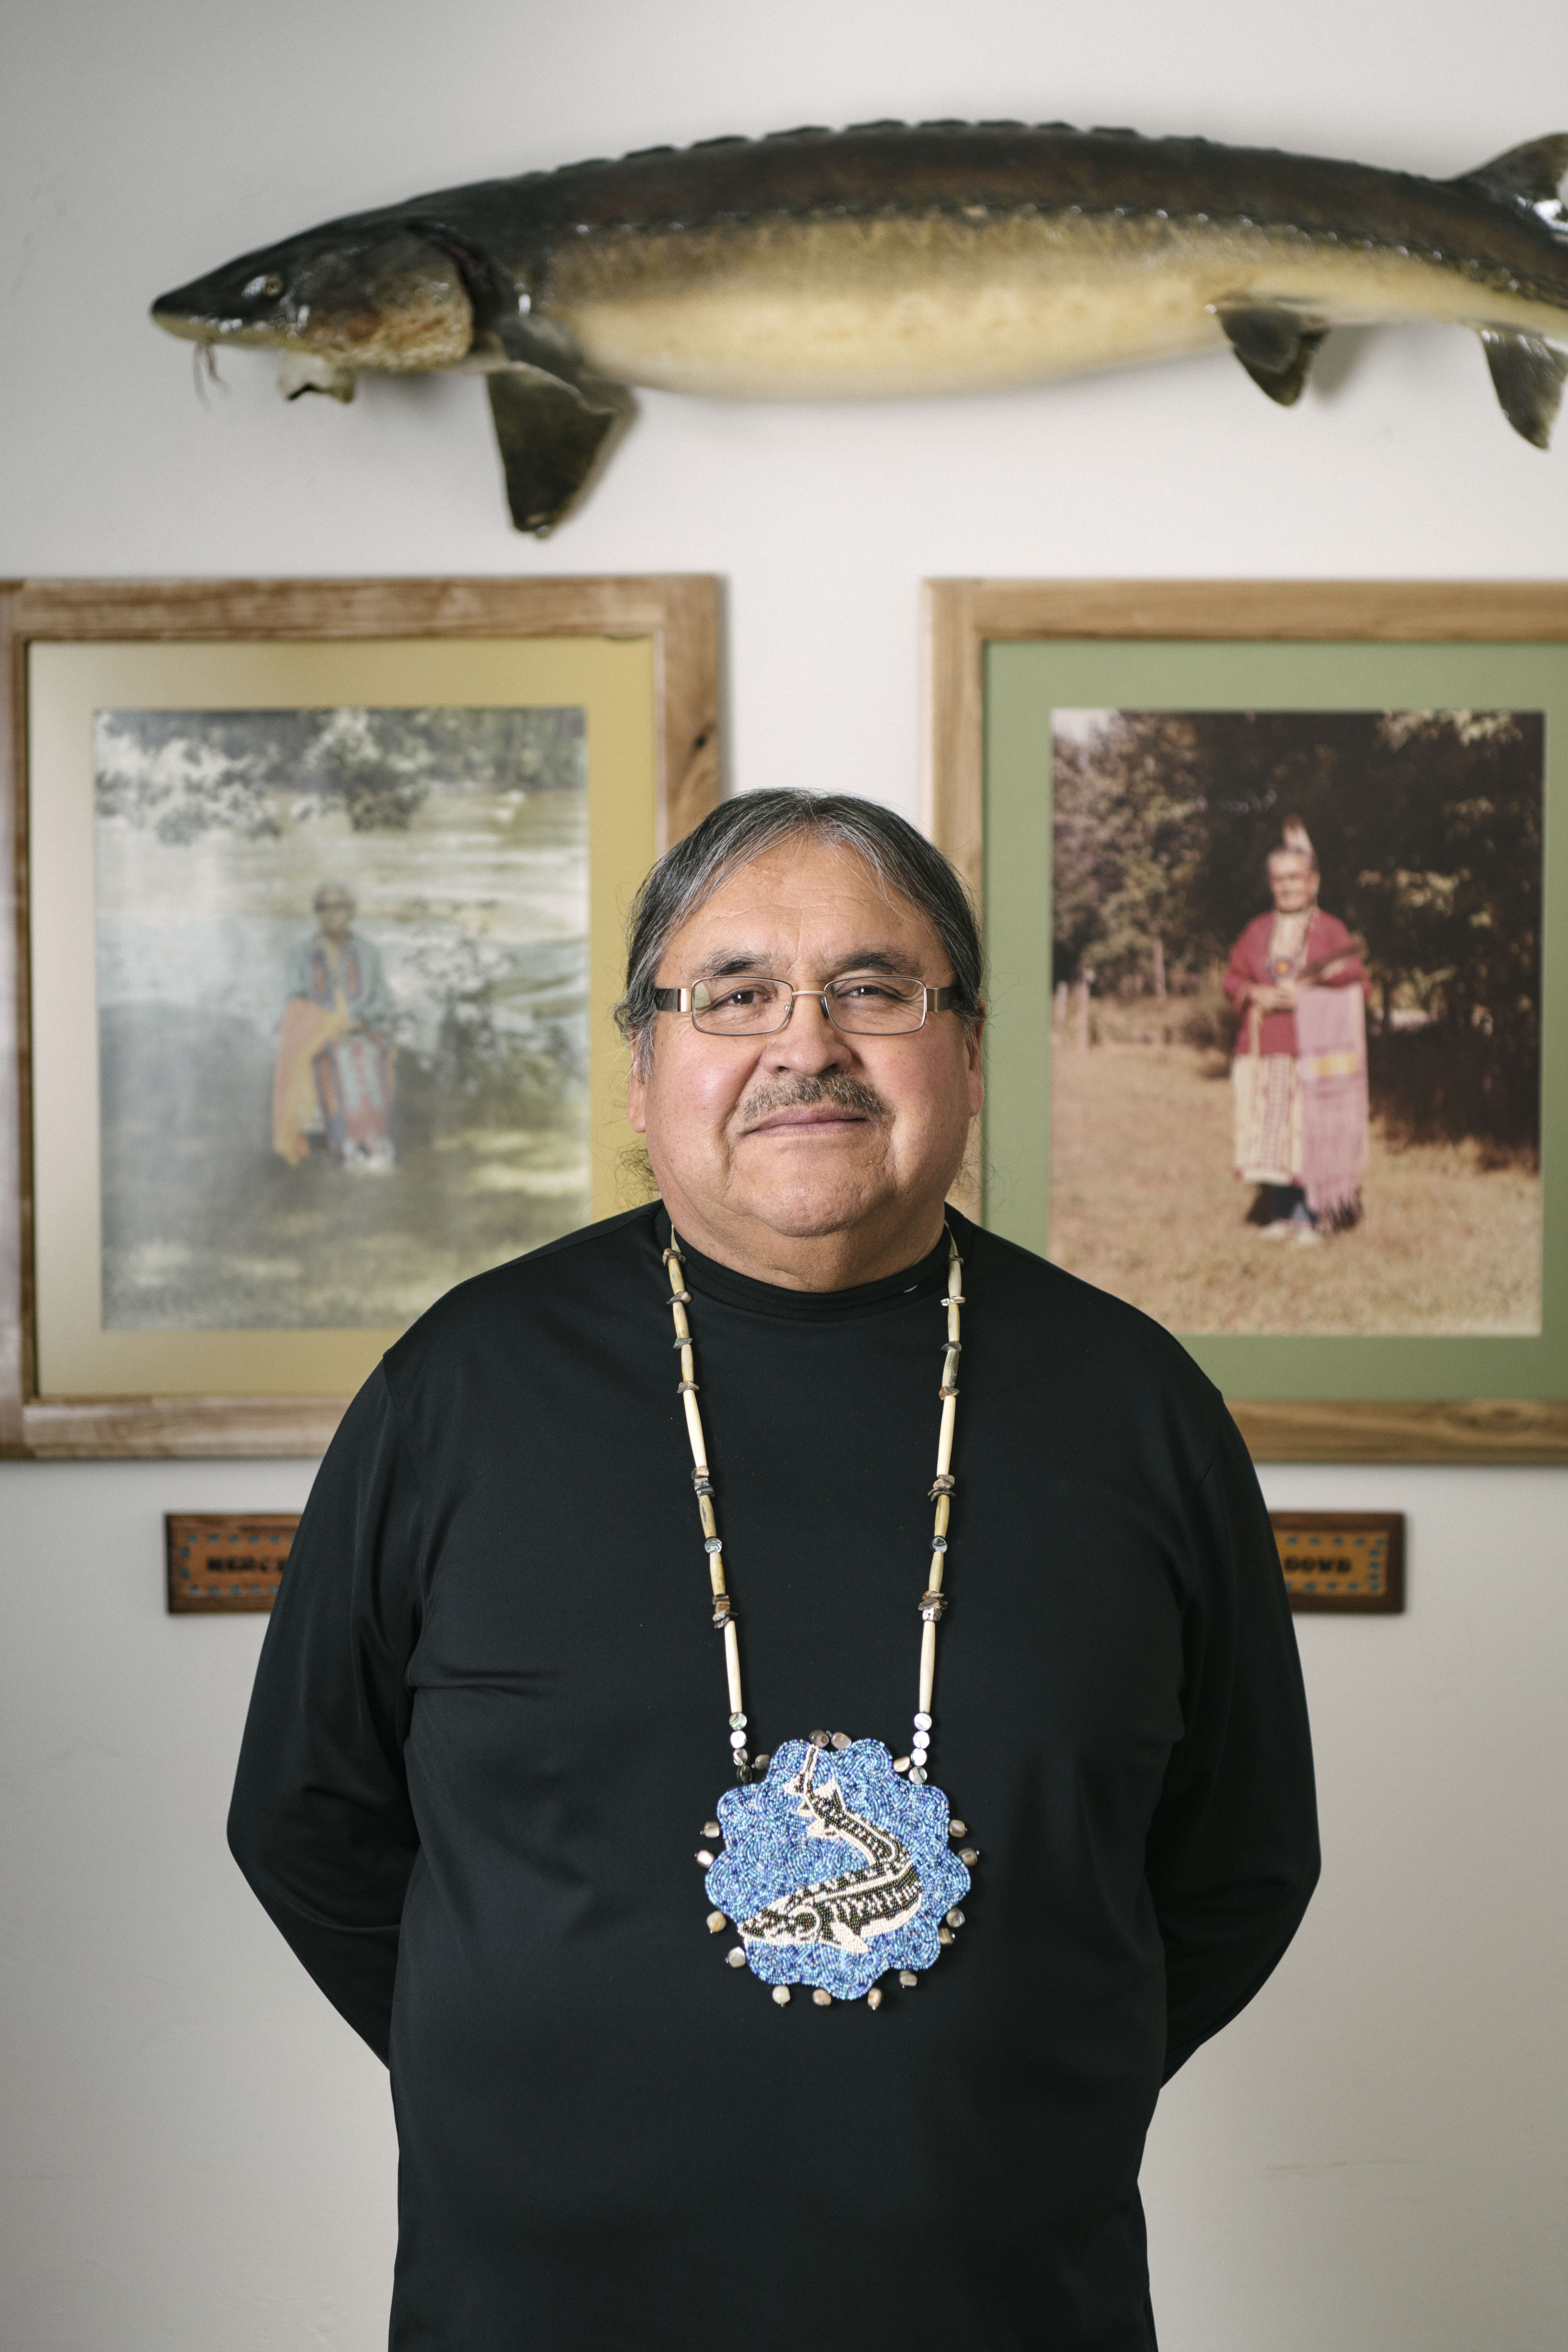 Historic Preservation Officer David Grignon at the Menominee Museum. Sturgeon is depicted in his traditional beadwork.